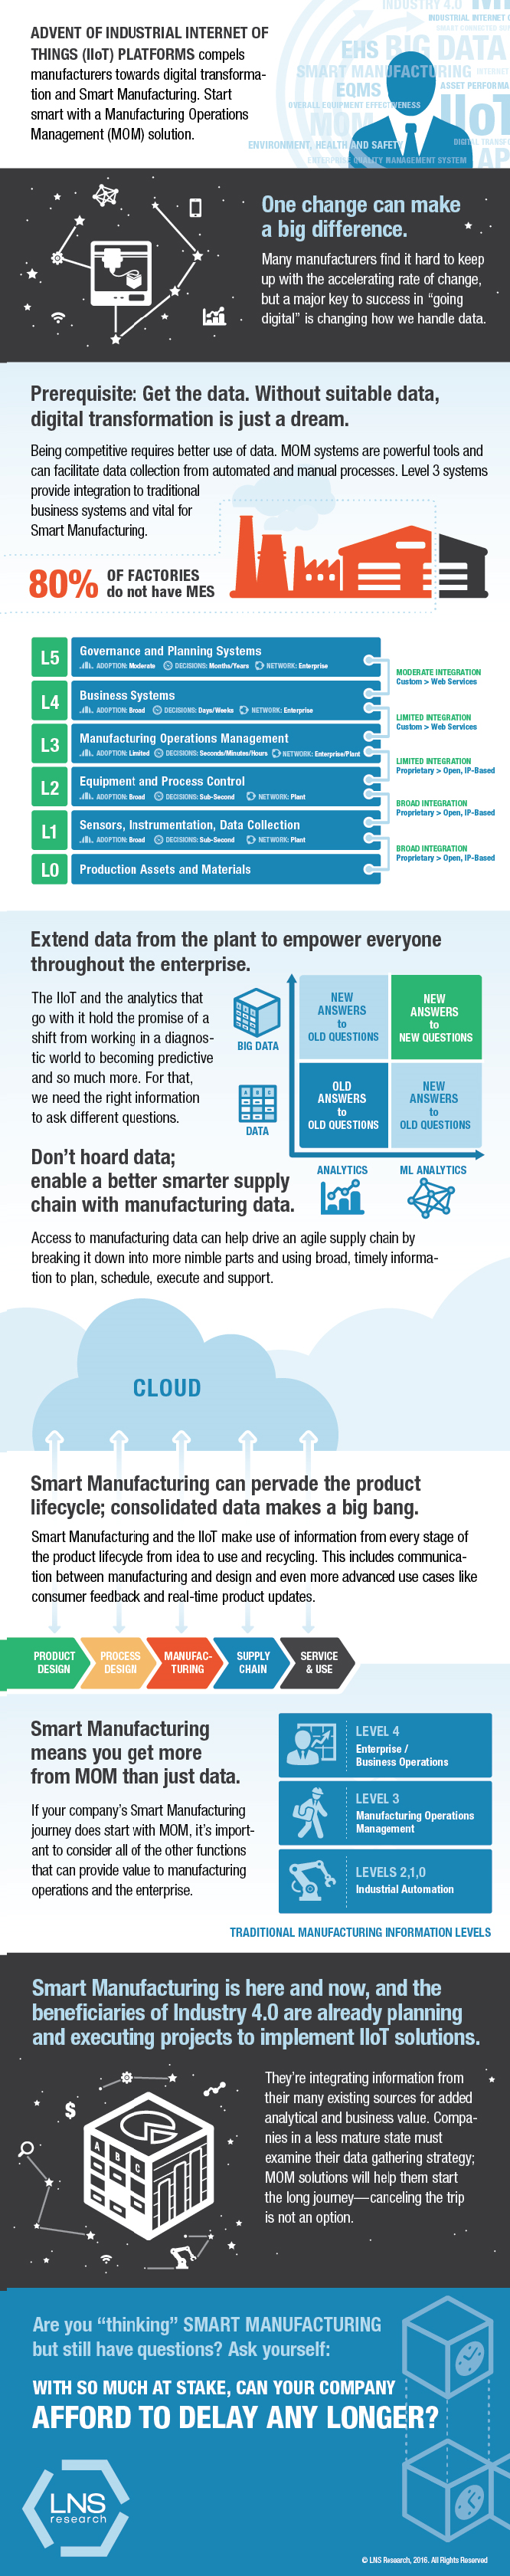 LNS_SmartManufacturing2.png